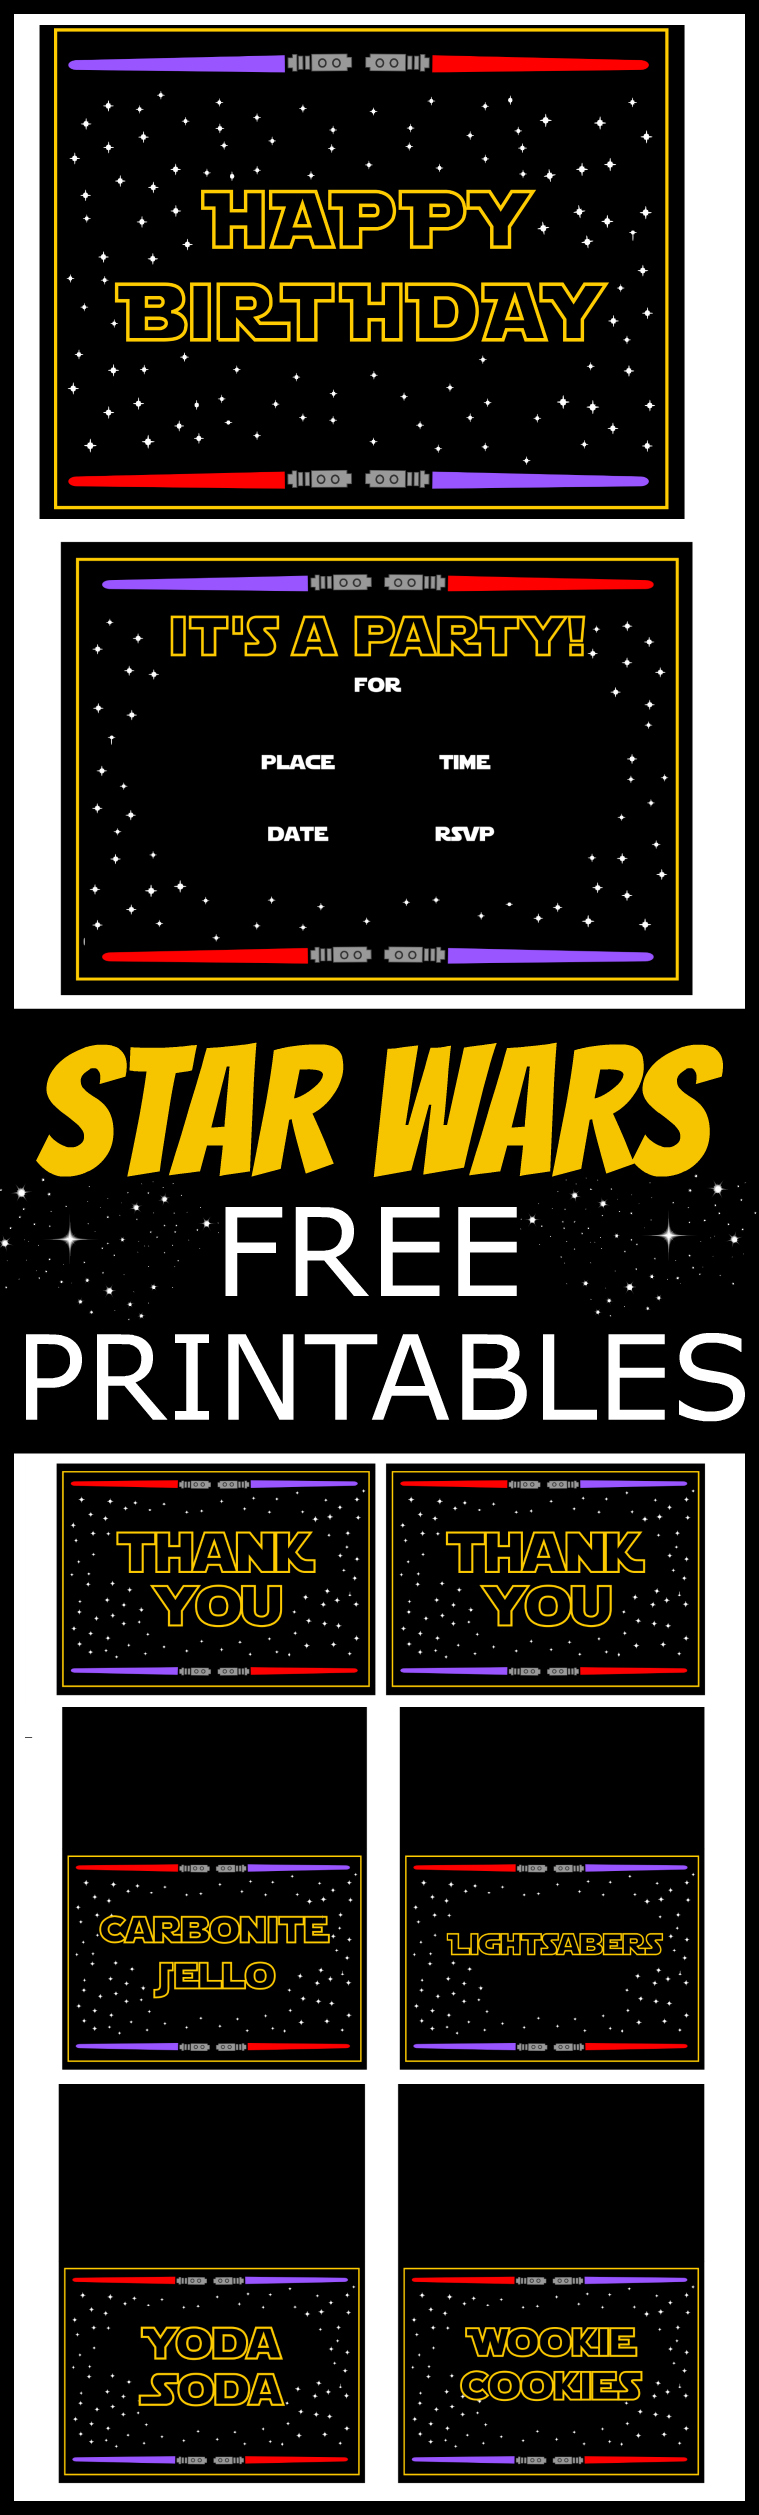 It's just a picture of Bewitching Star Wars Printable Cards